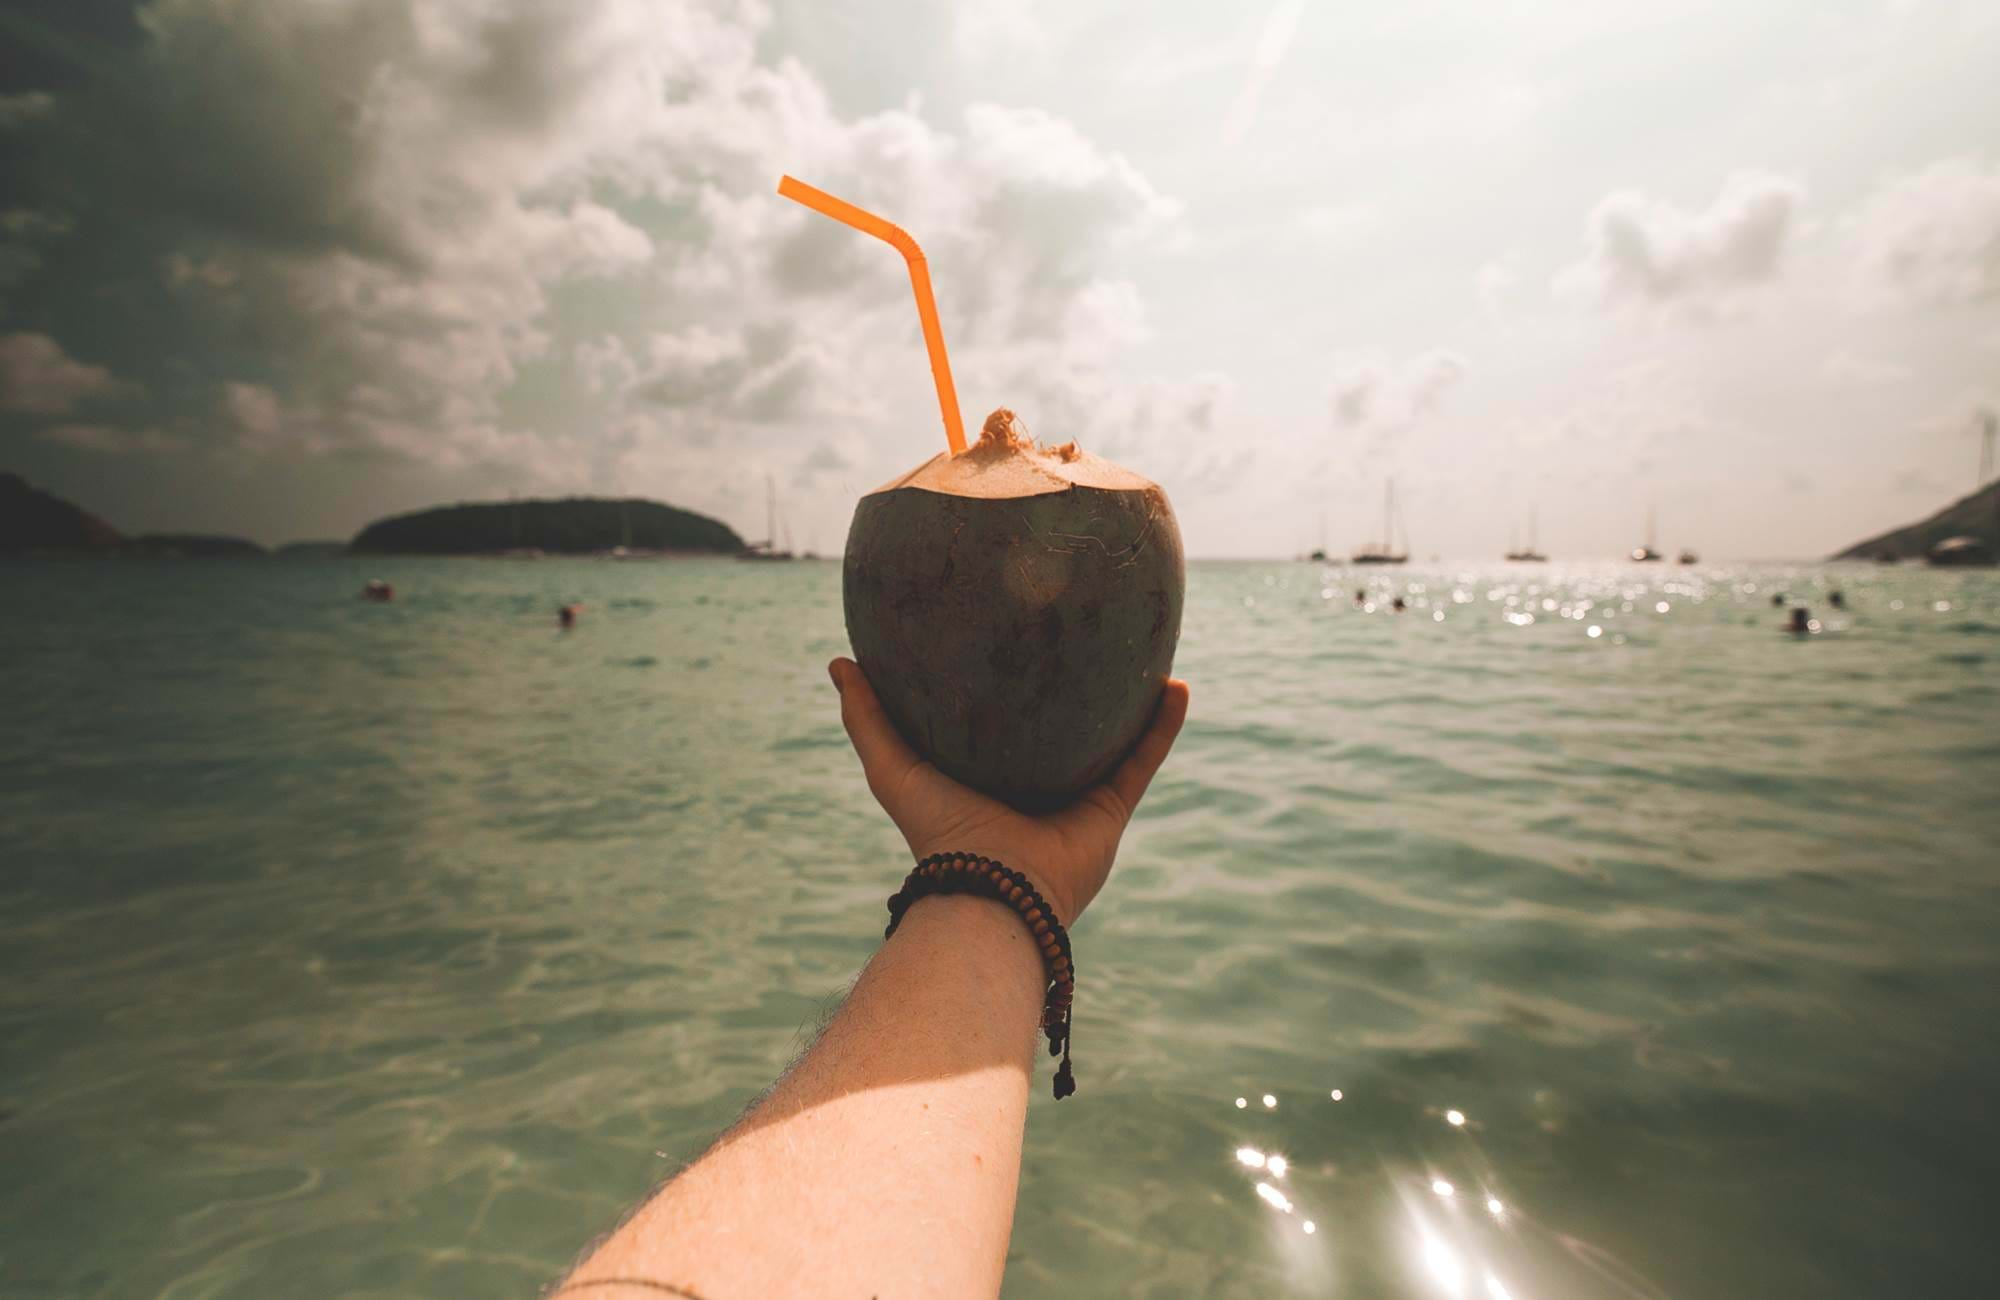 phuket-thailand-coconut-at-the-waterside-cover